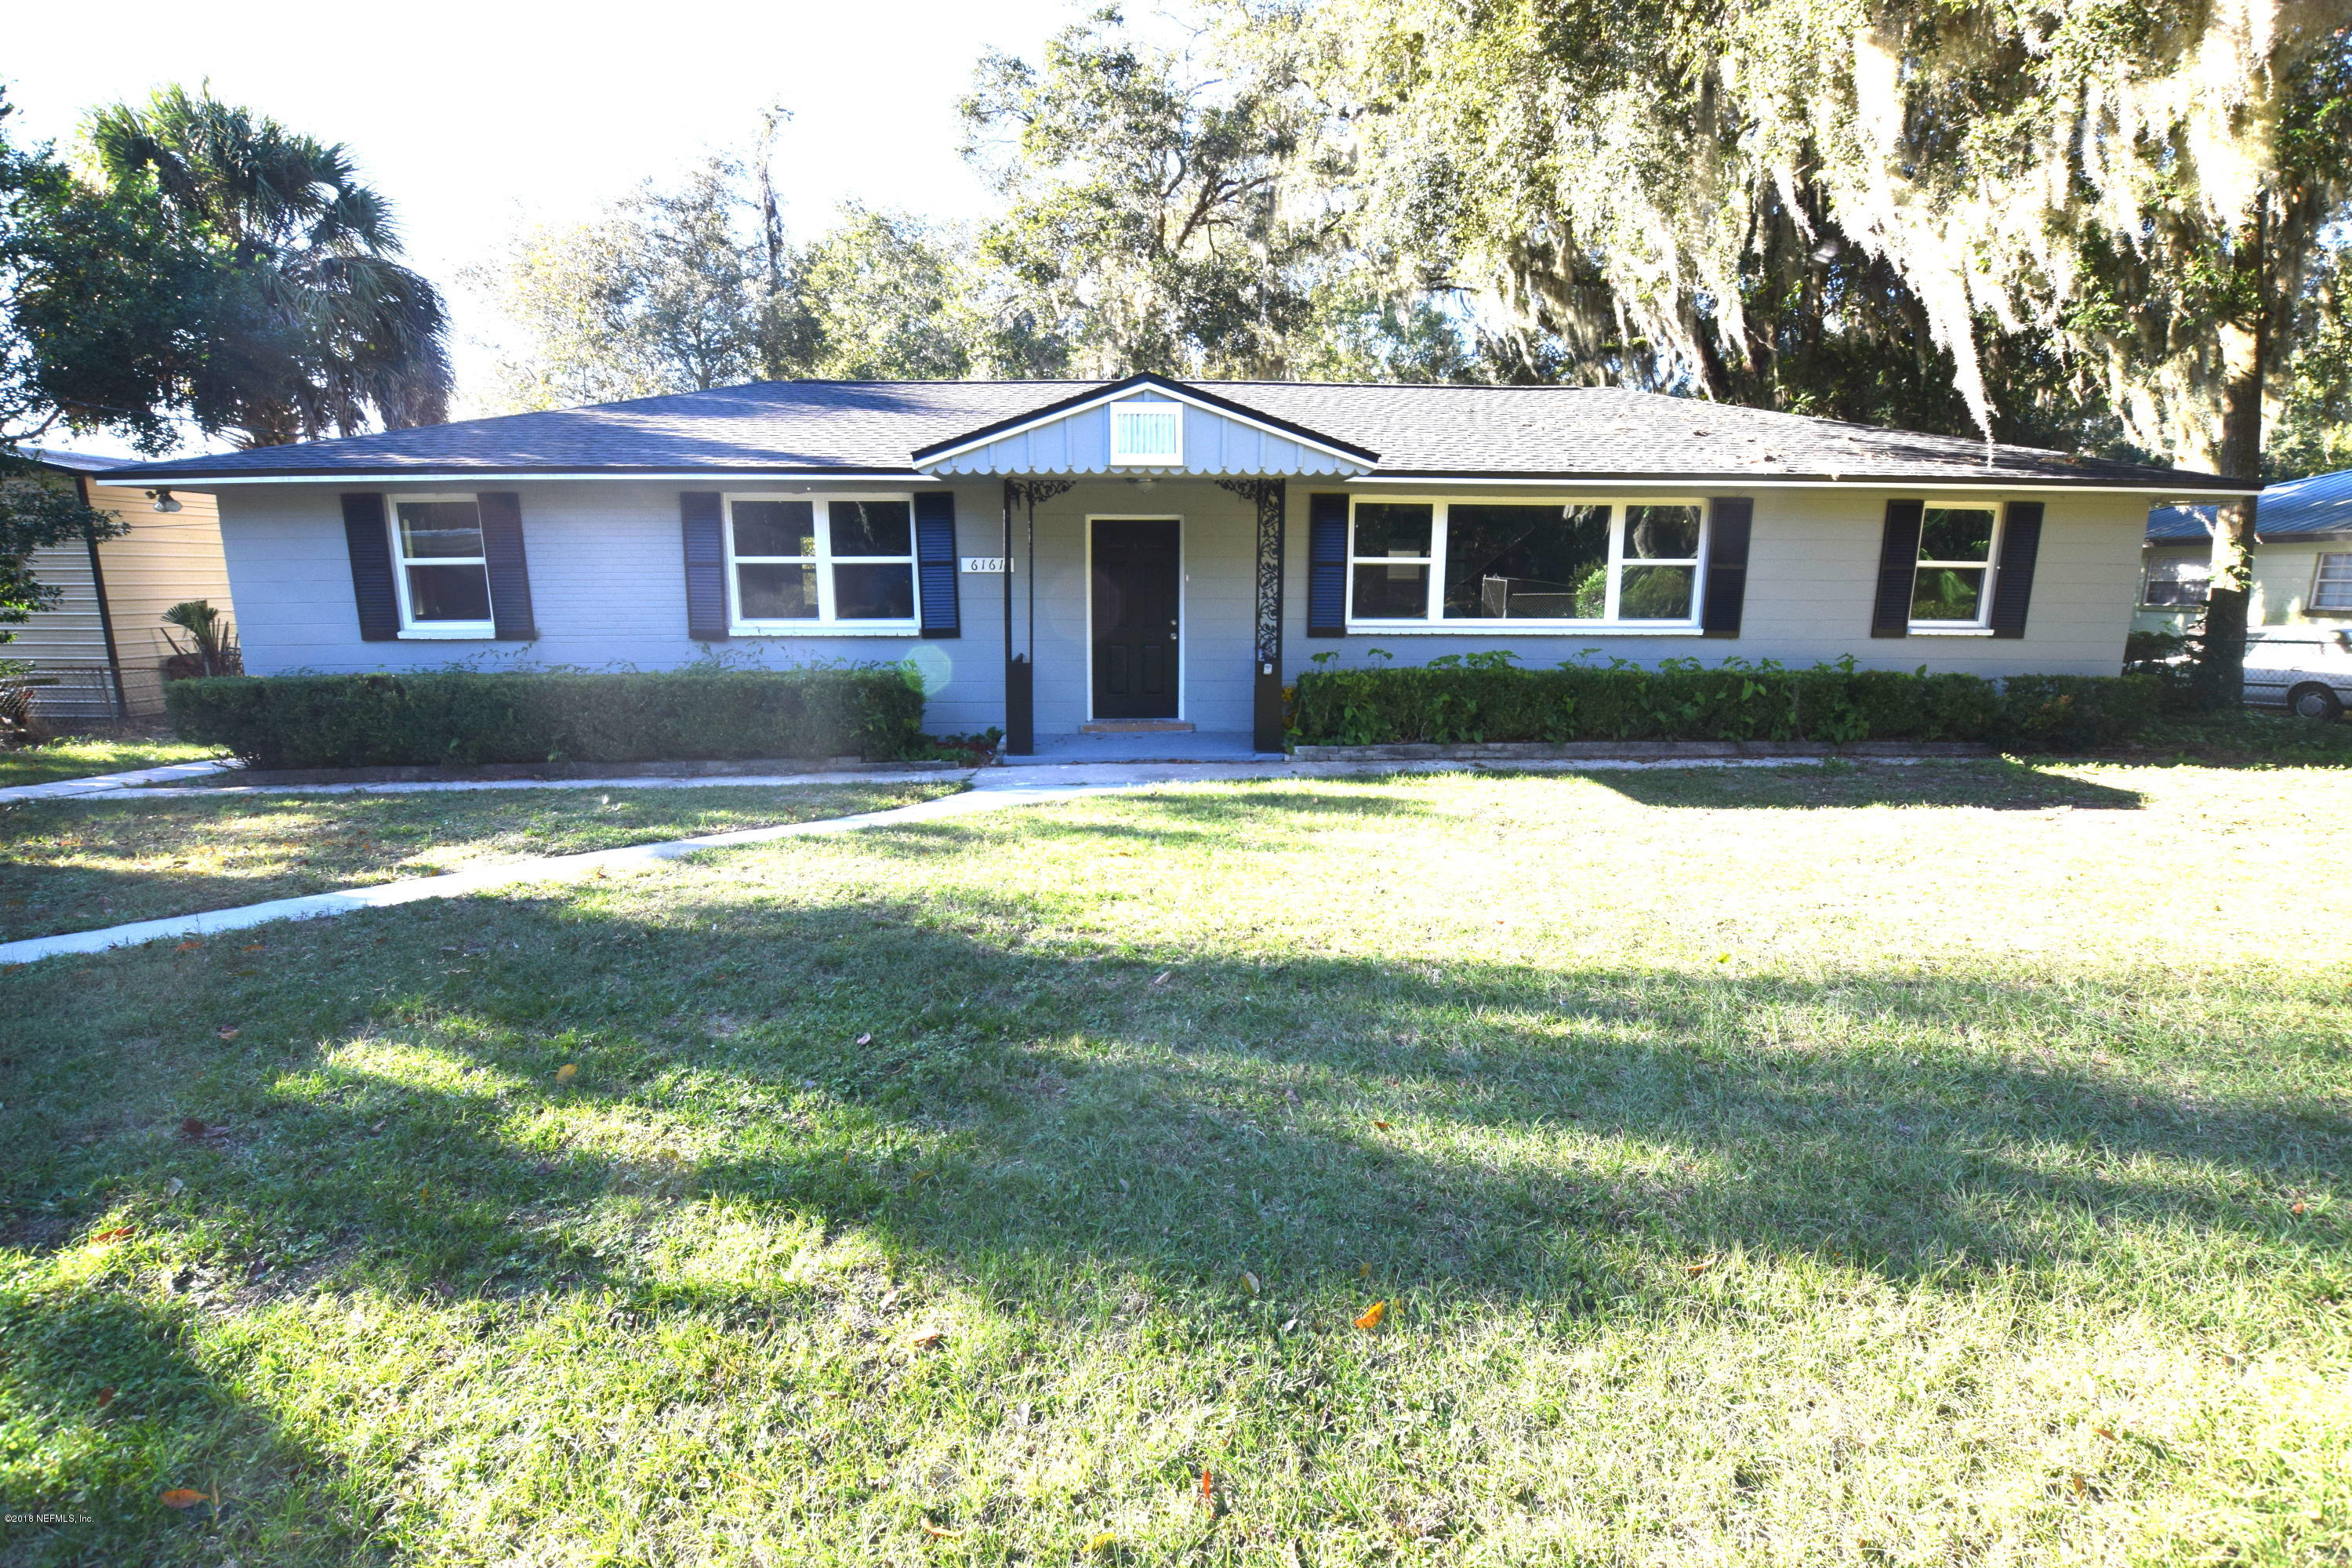 6161 HYDE PARK, JACKSONVILLE, FLORIDA 32210, 3 Bedrooms Bedrooms, ,2 BathroomsBathrooms,Residential - single family,For sale,HYDE PARK,969844